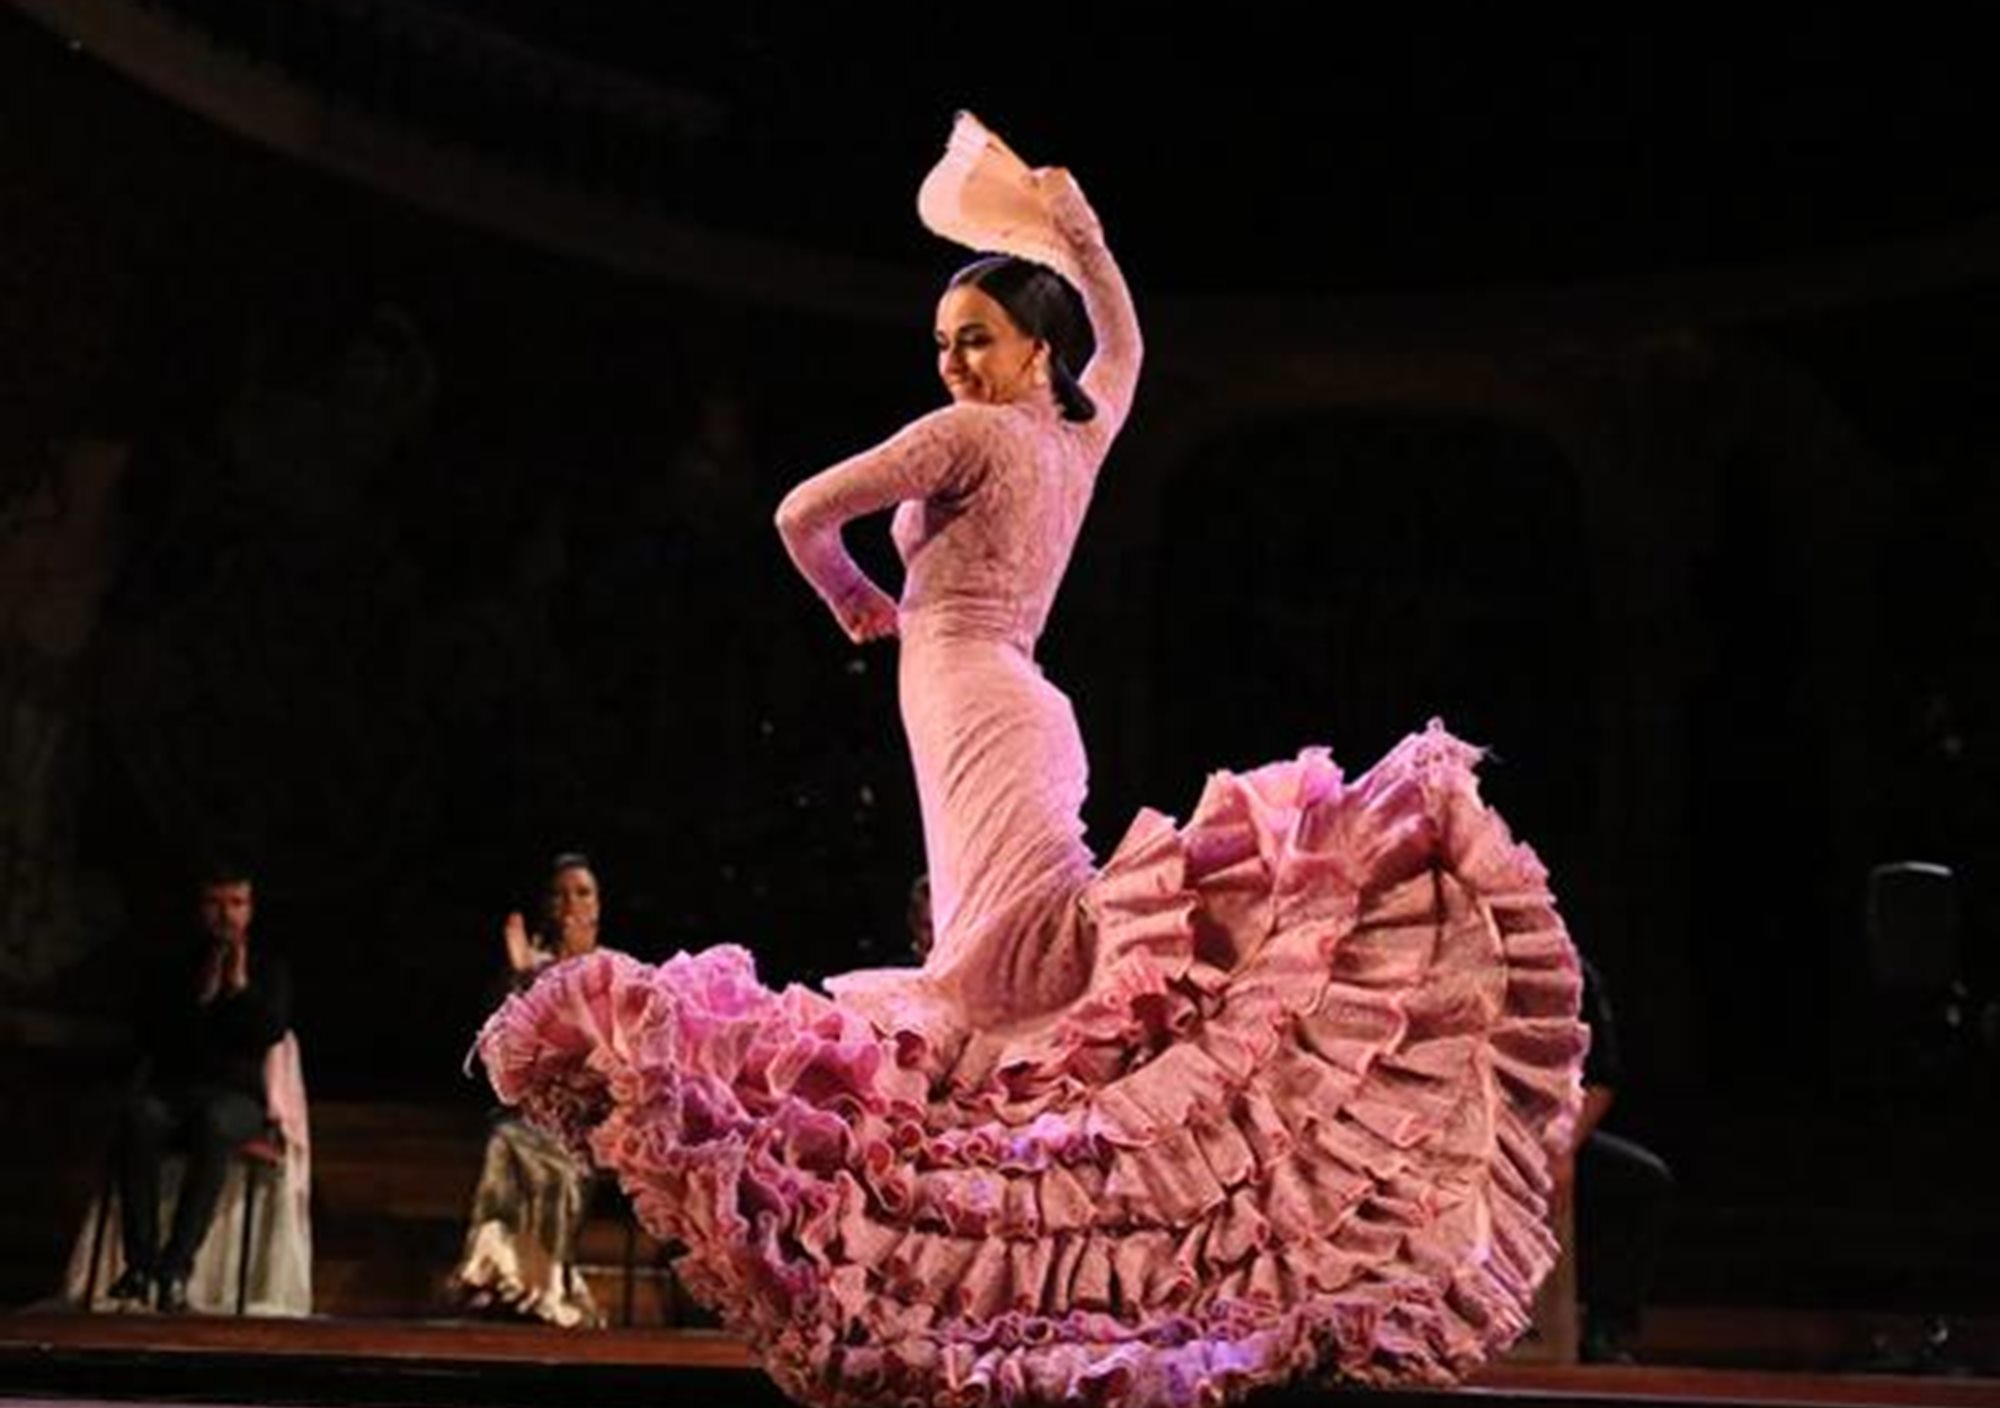 Show Gran Gala Flamenco in Palau de la Música Catalana buy get online tickets